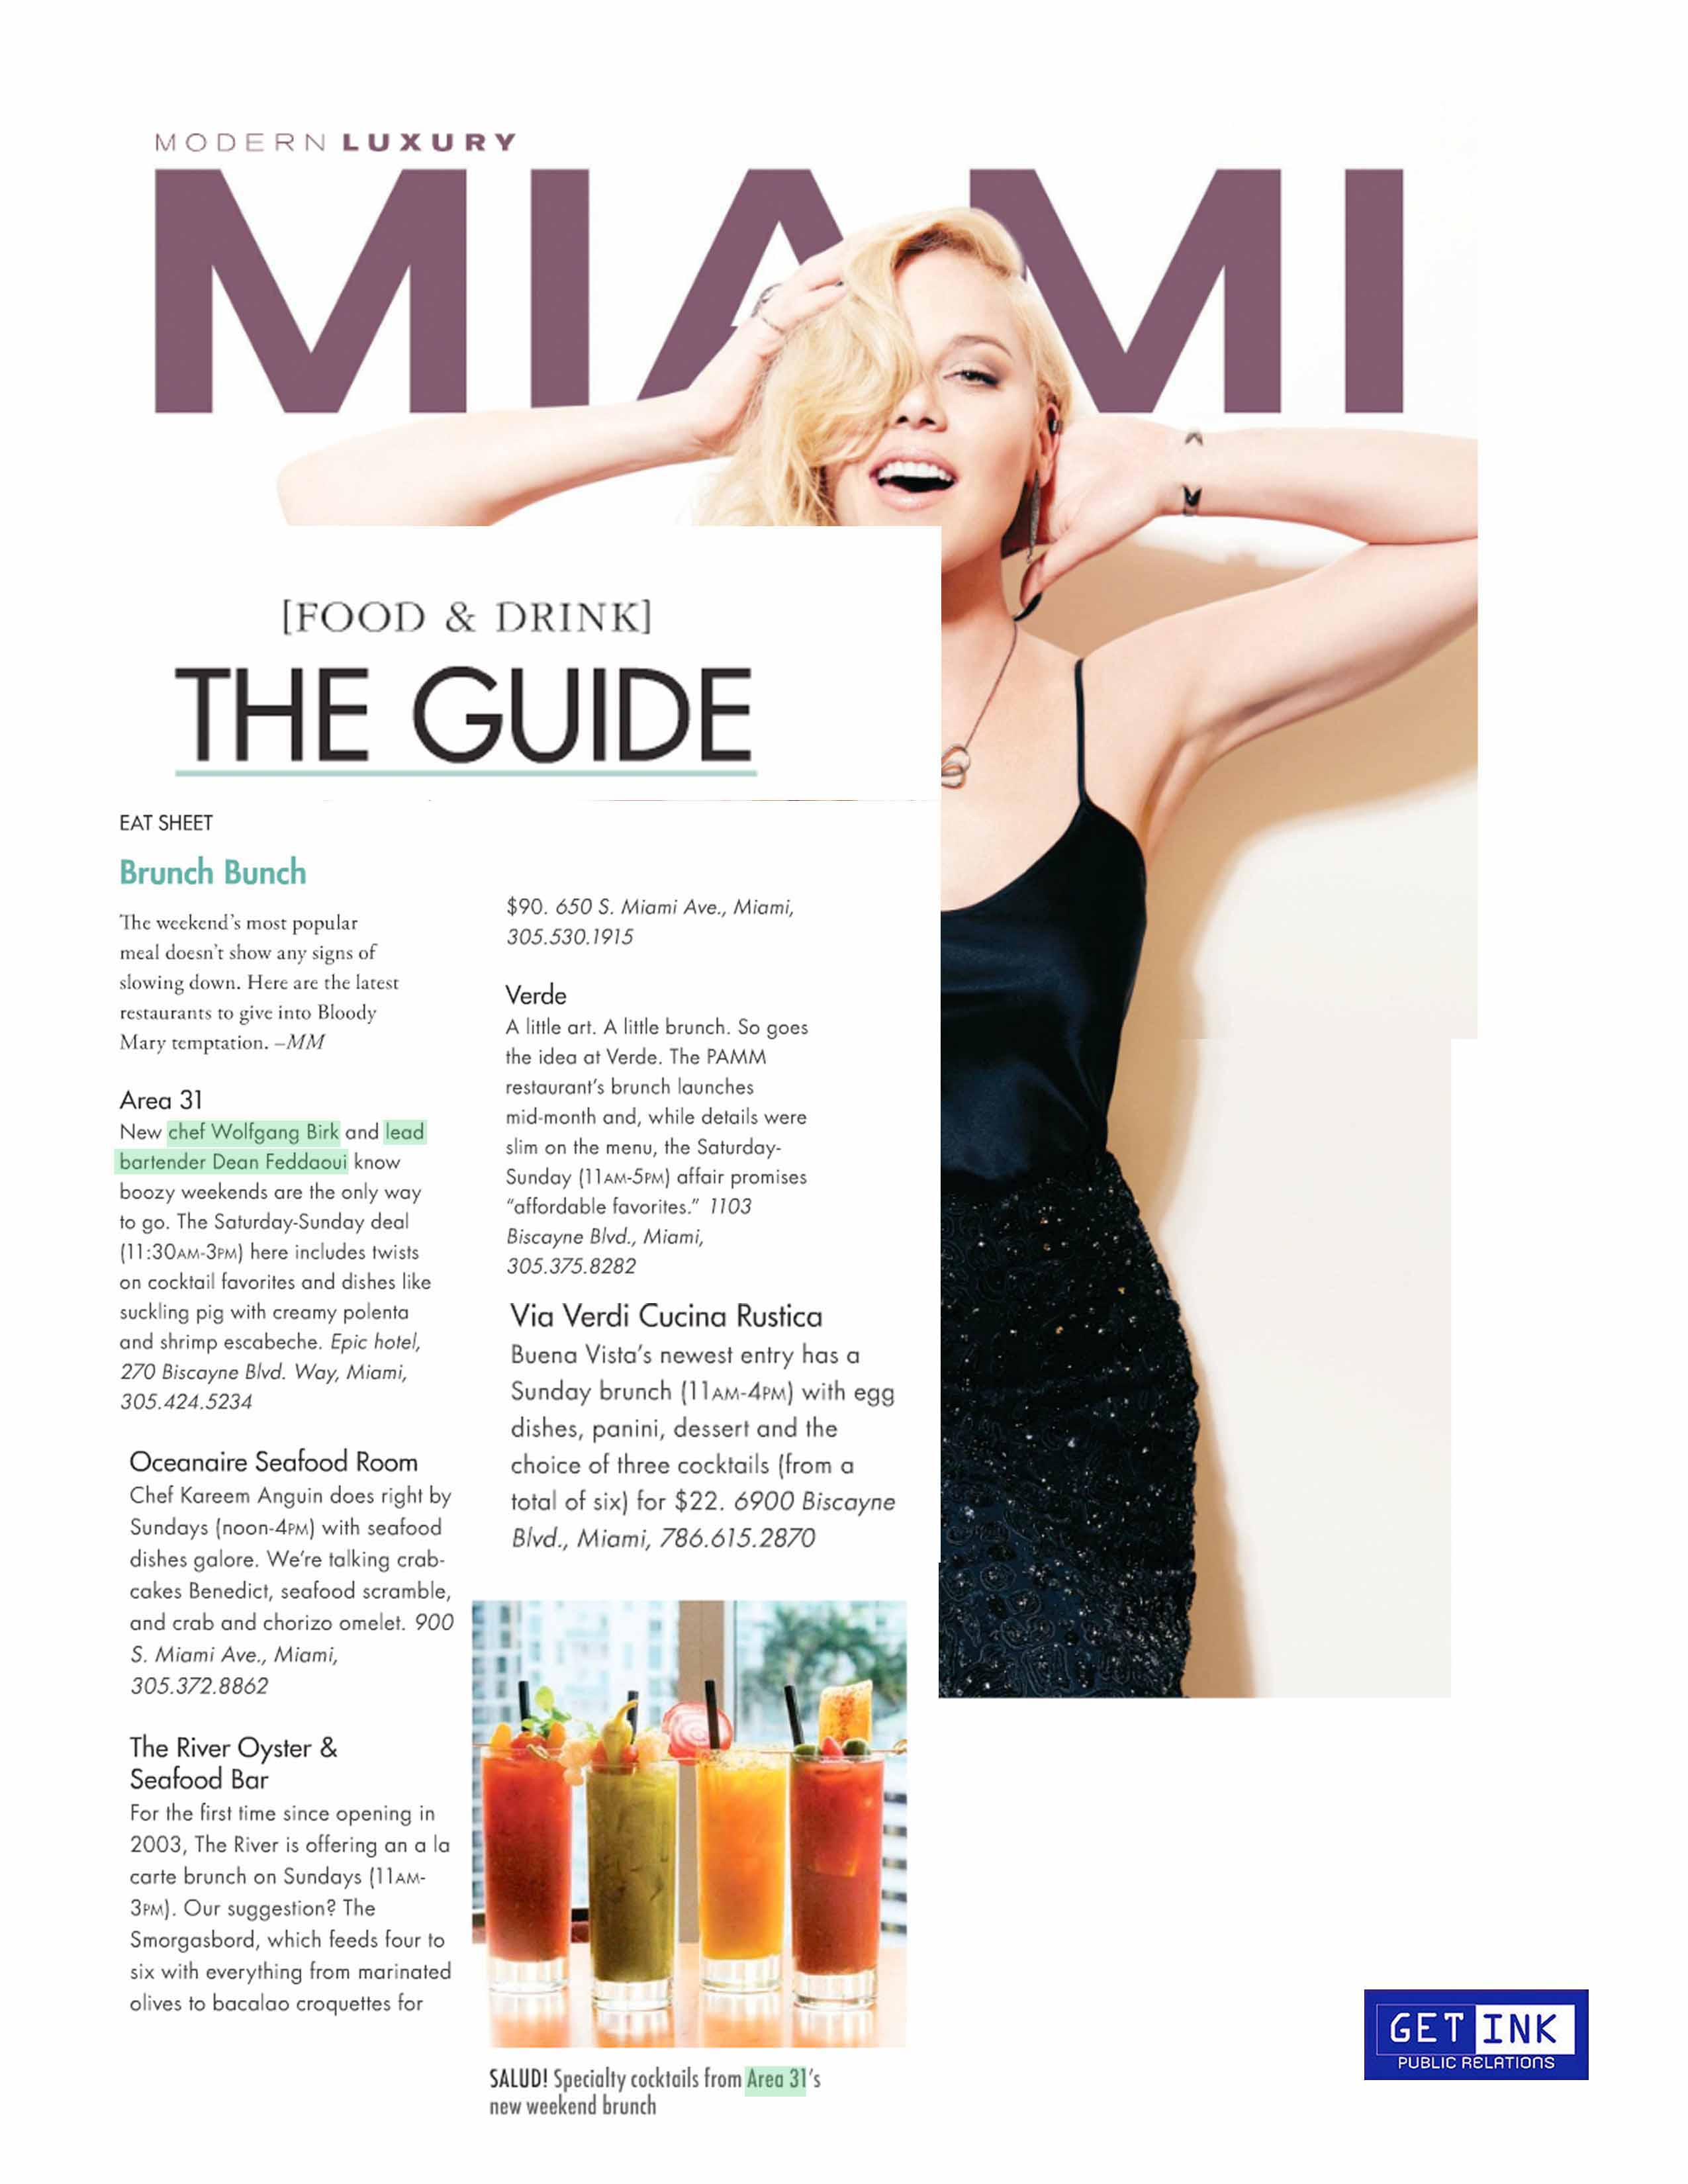 Miami Magazine feature on Area 31 in Miami